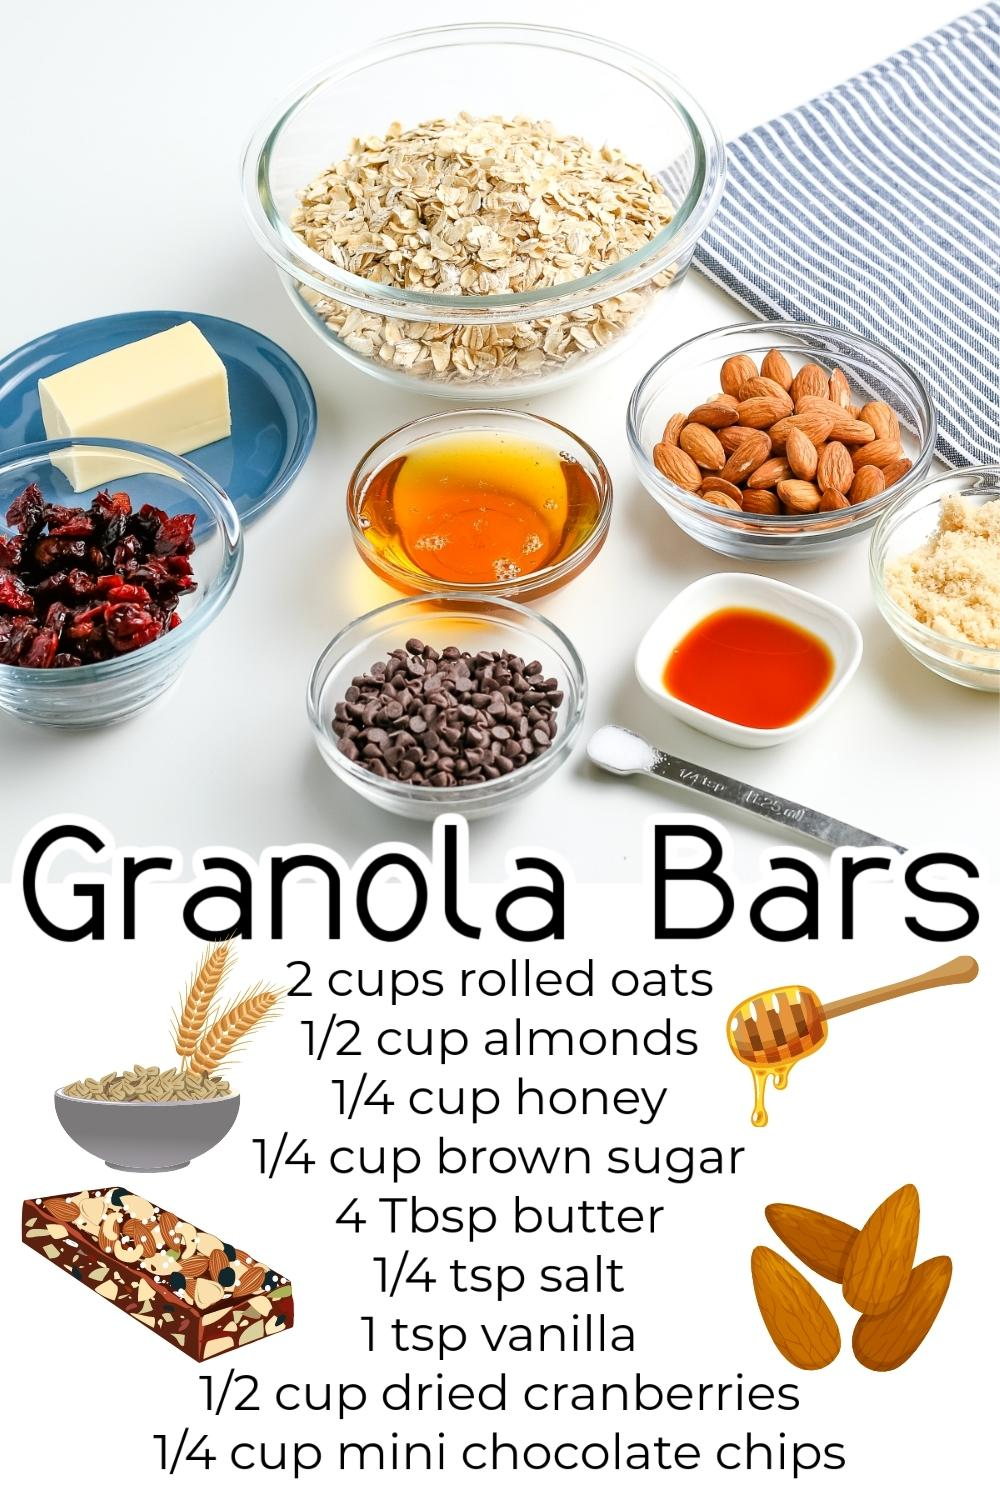 All of the ingredients needed to make this Homemade Granola Bar Recipe.